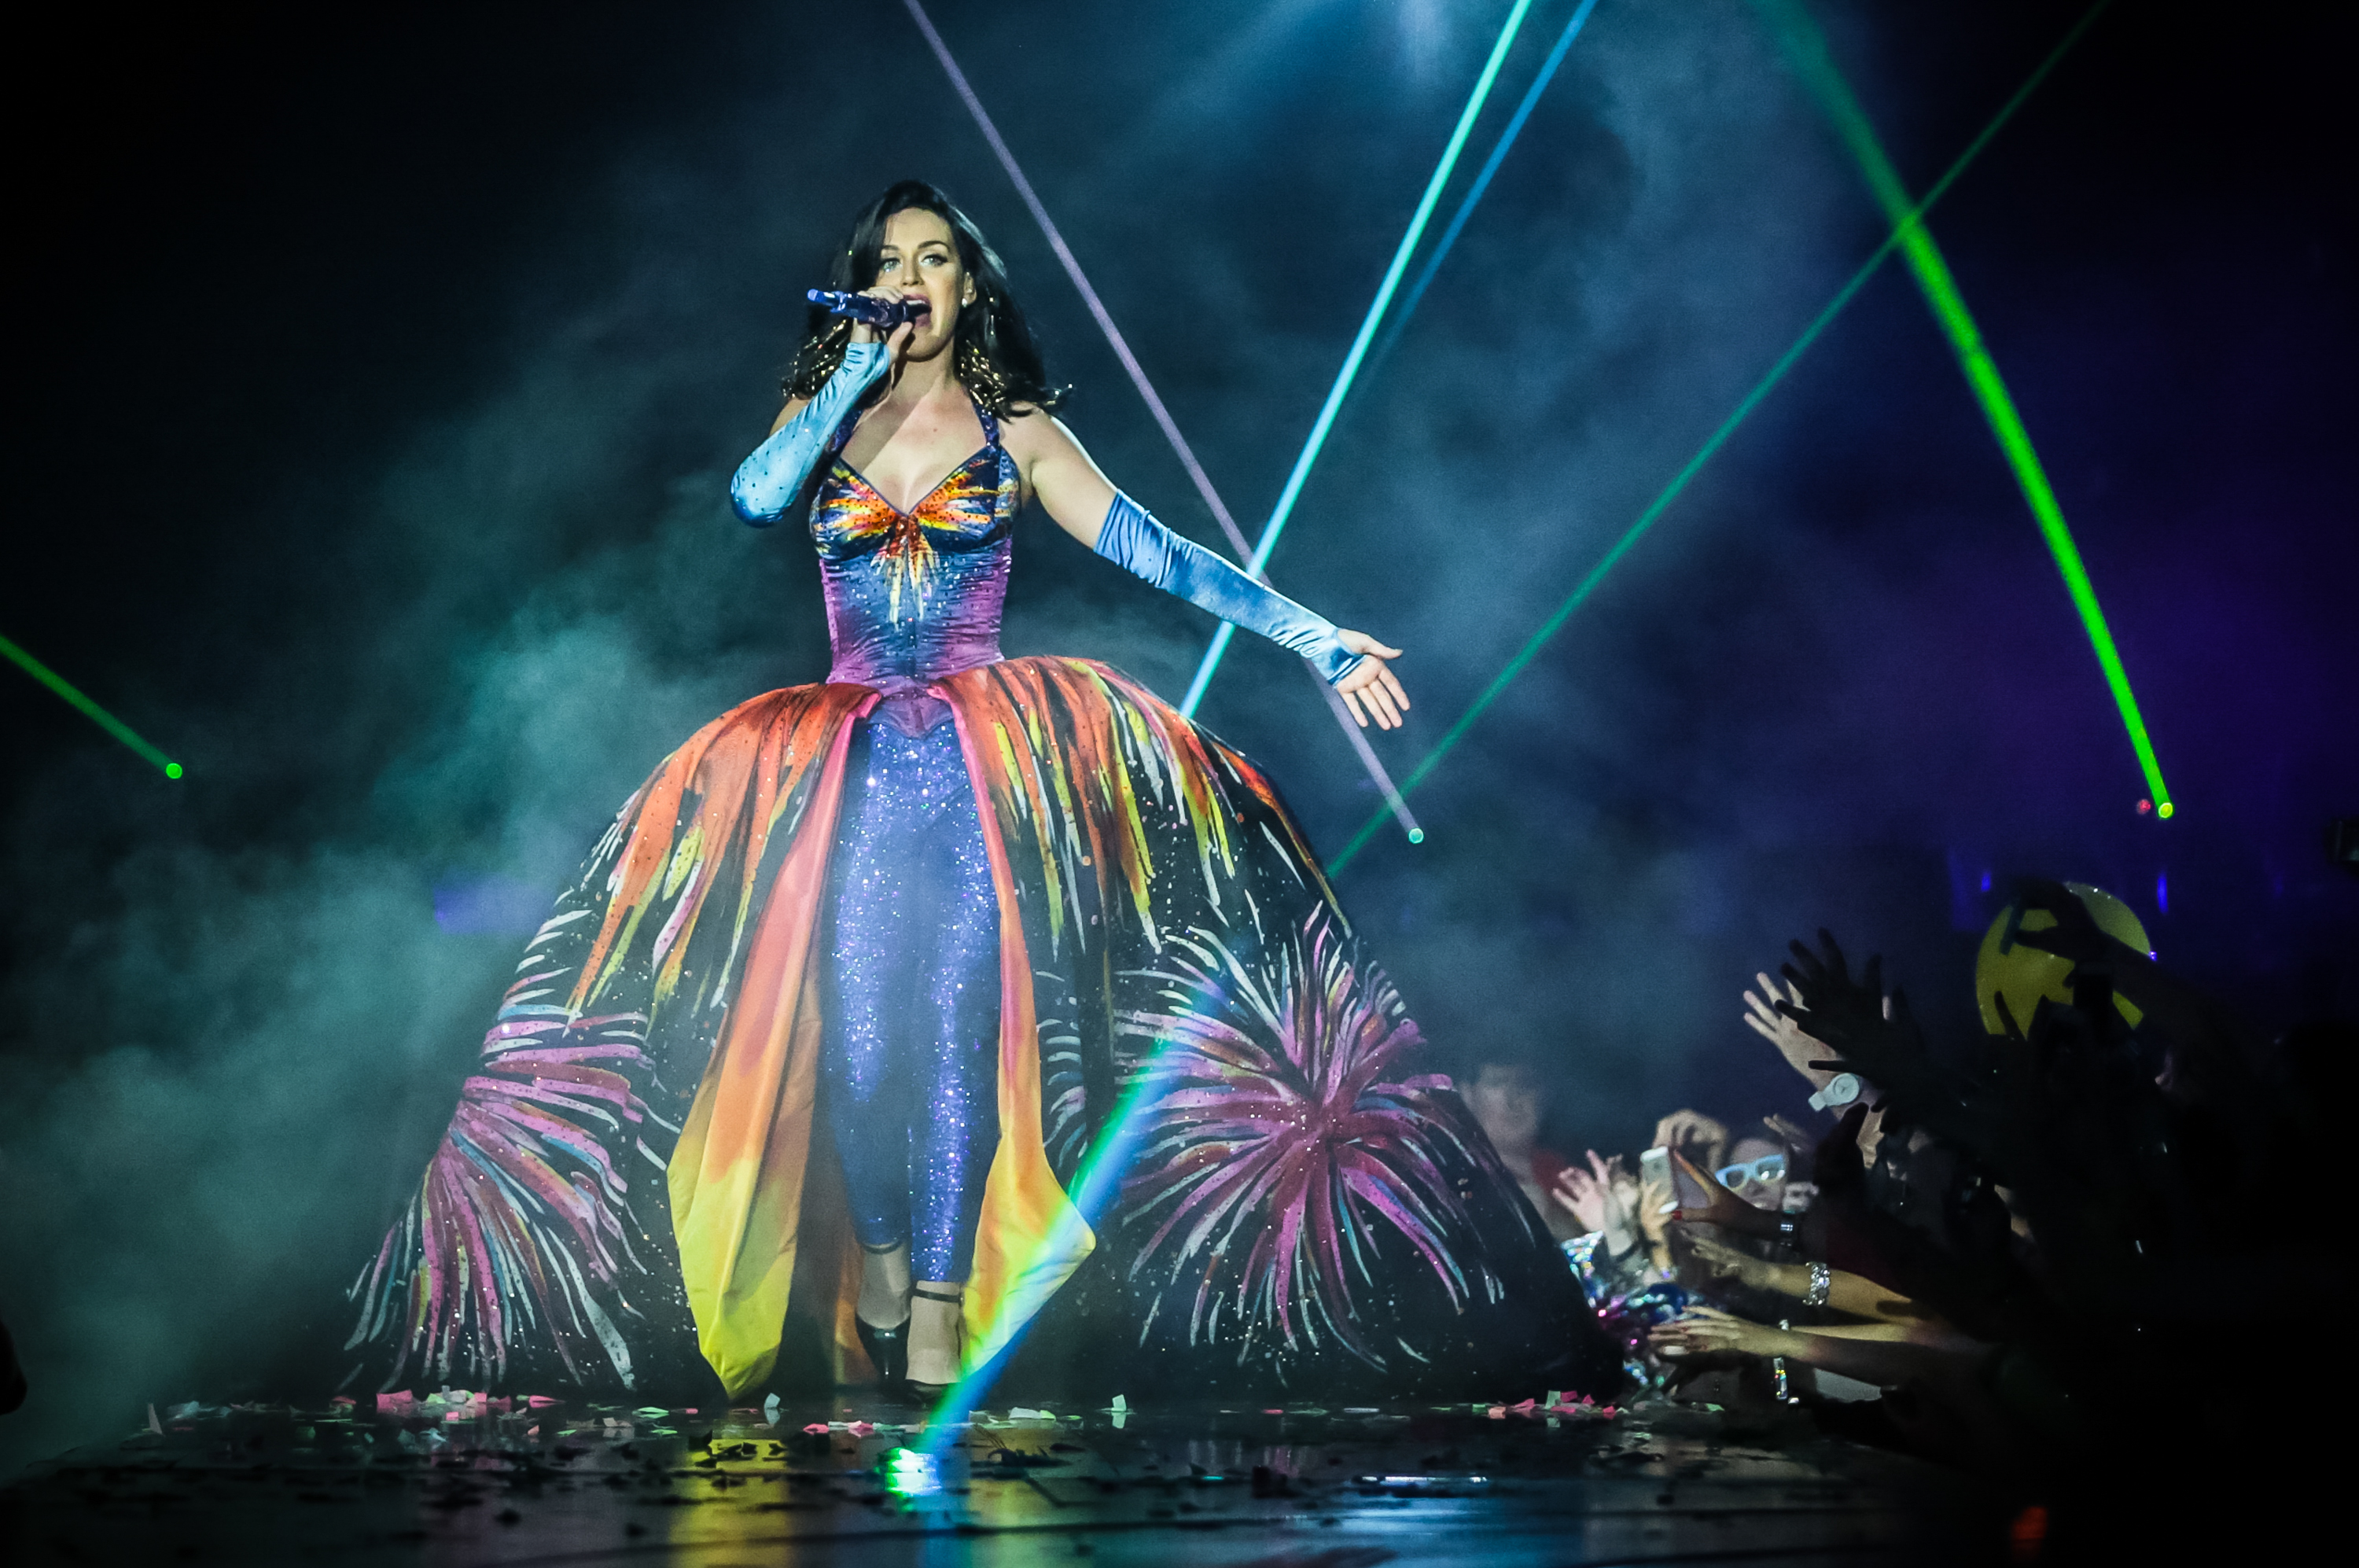 Katy Perry performs on stage on the second night of her Prismatic World Tour at Odyssey Arena on May 8, 2014 in Belfast, Northern Ireland.